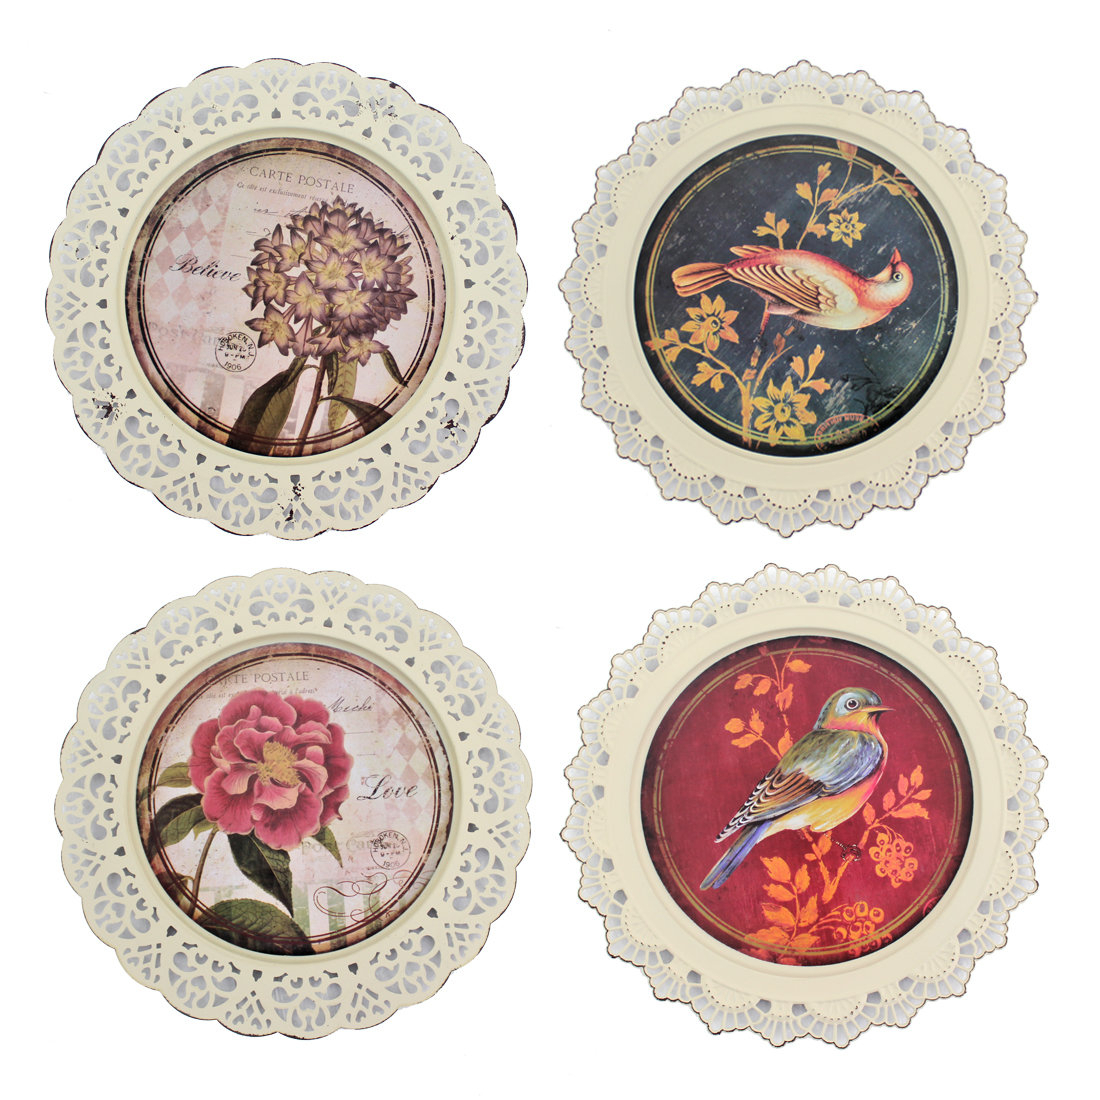 Vintage Metal Plate Wall Decor With Regard To Scattered Metal Italian Plates Wall Decor (View 16 of 30)